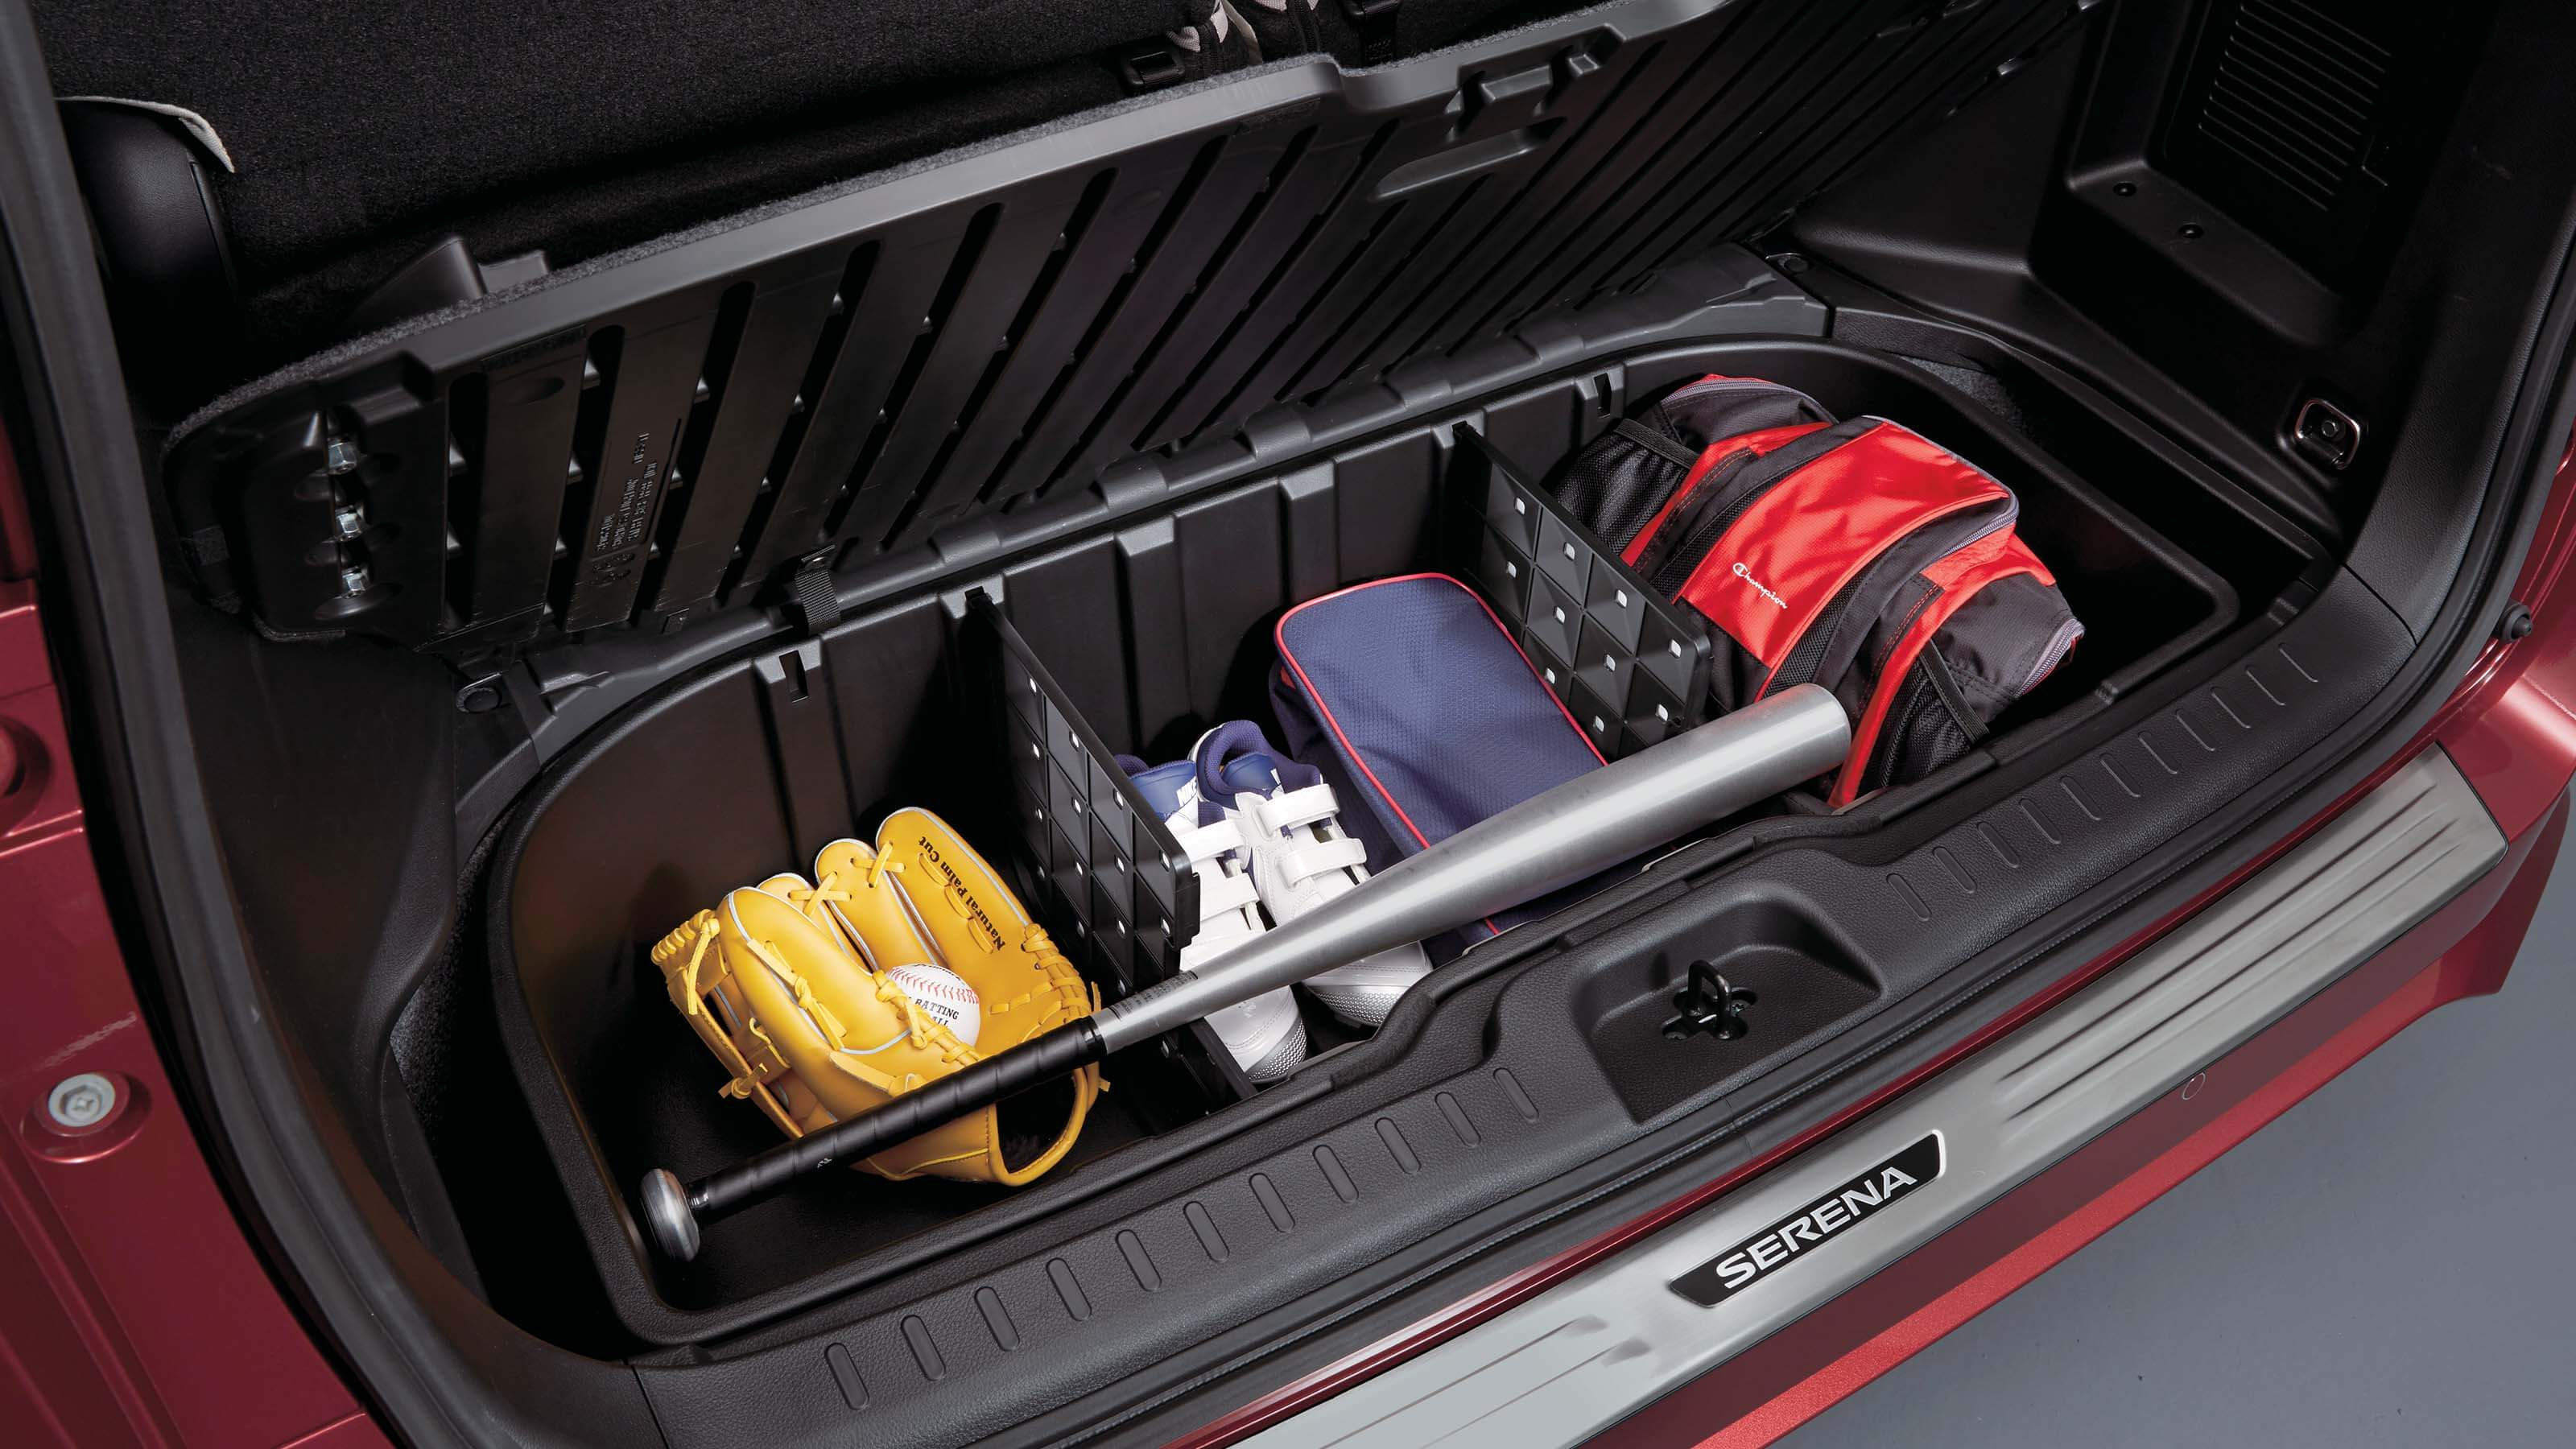 Luggage Underbox Tray